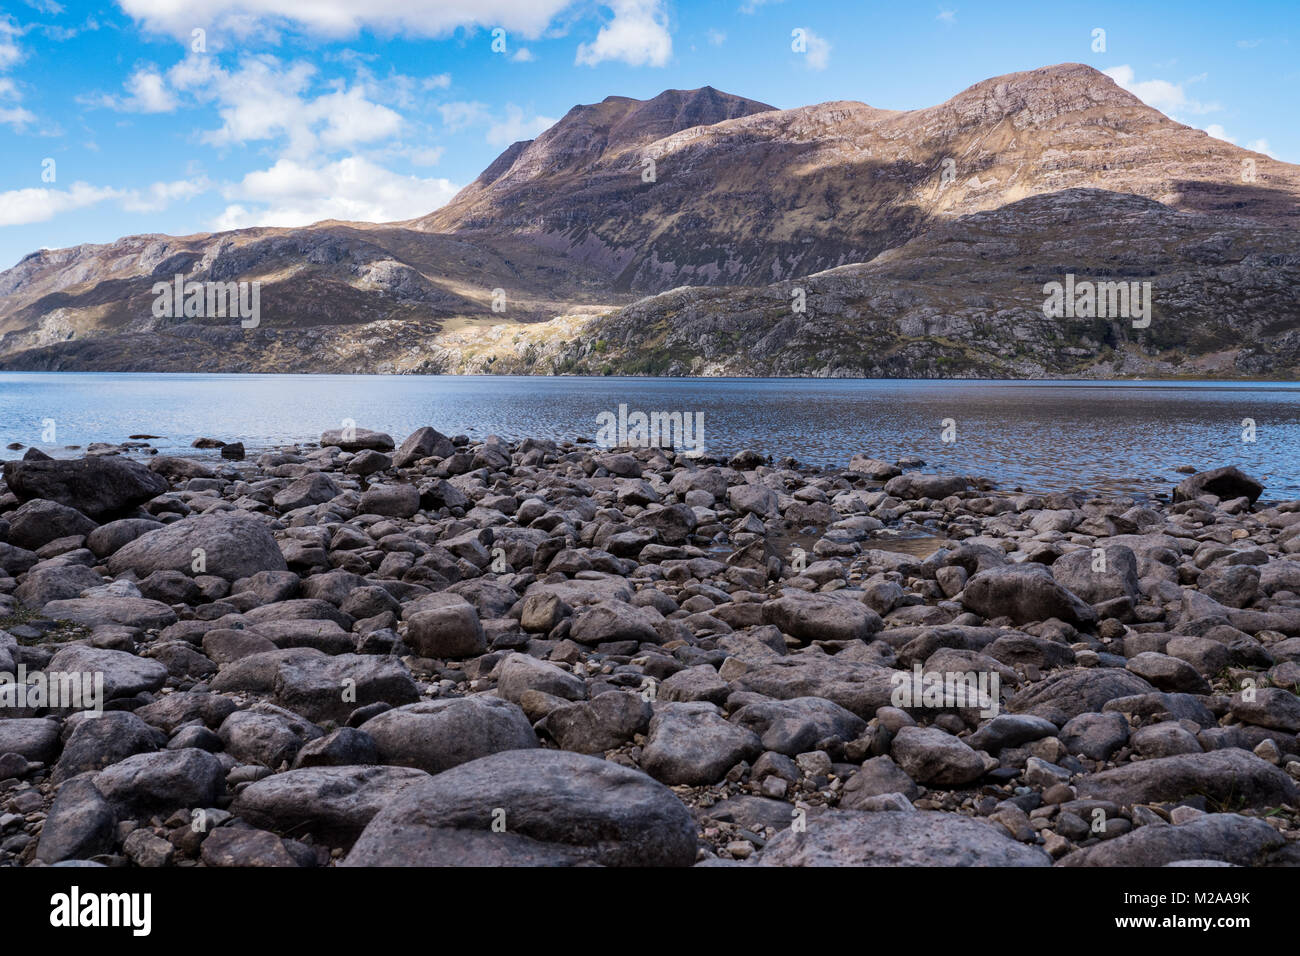 Loch Maree with the Beinn Eighe national nature reserve in the background. - Stock Image